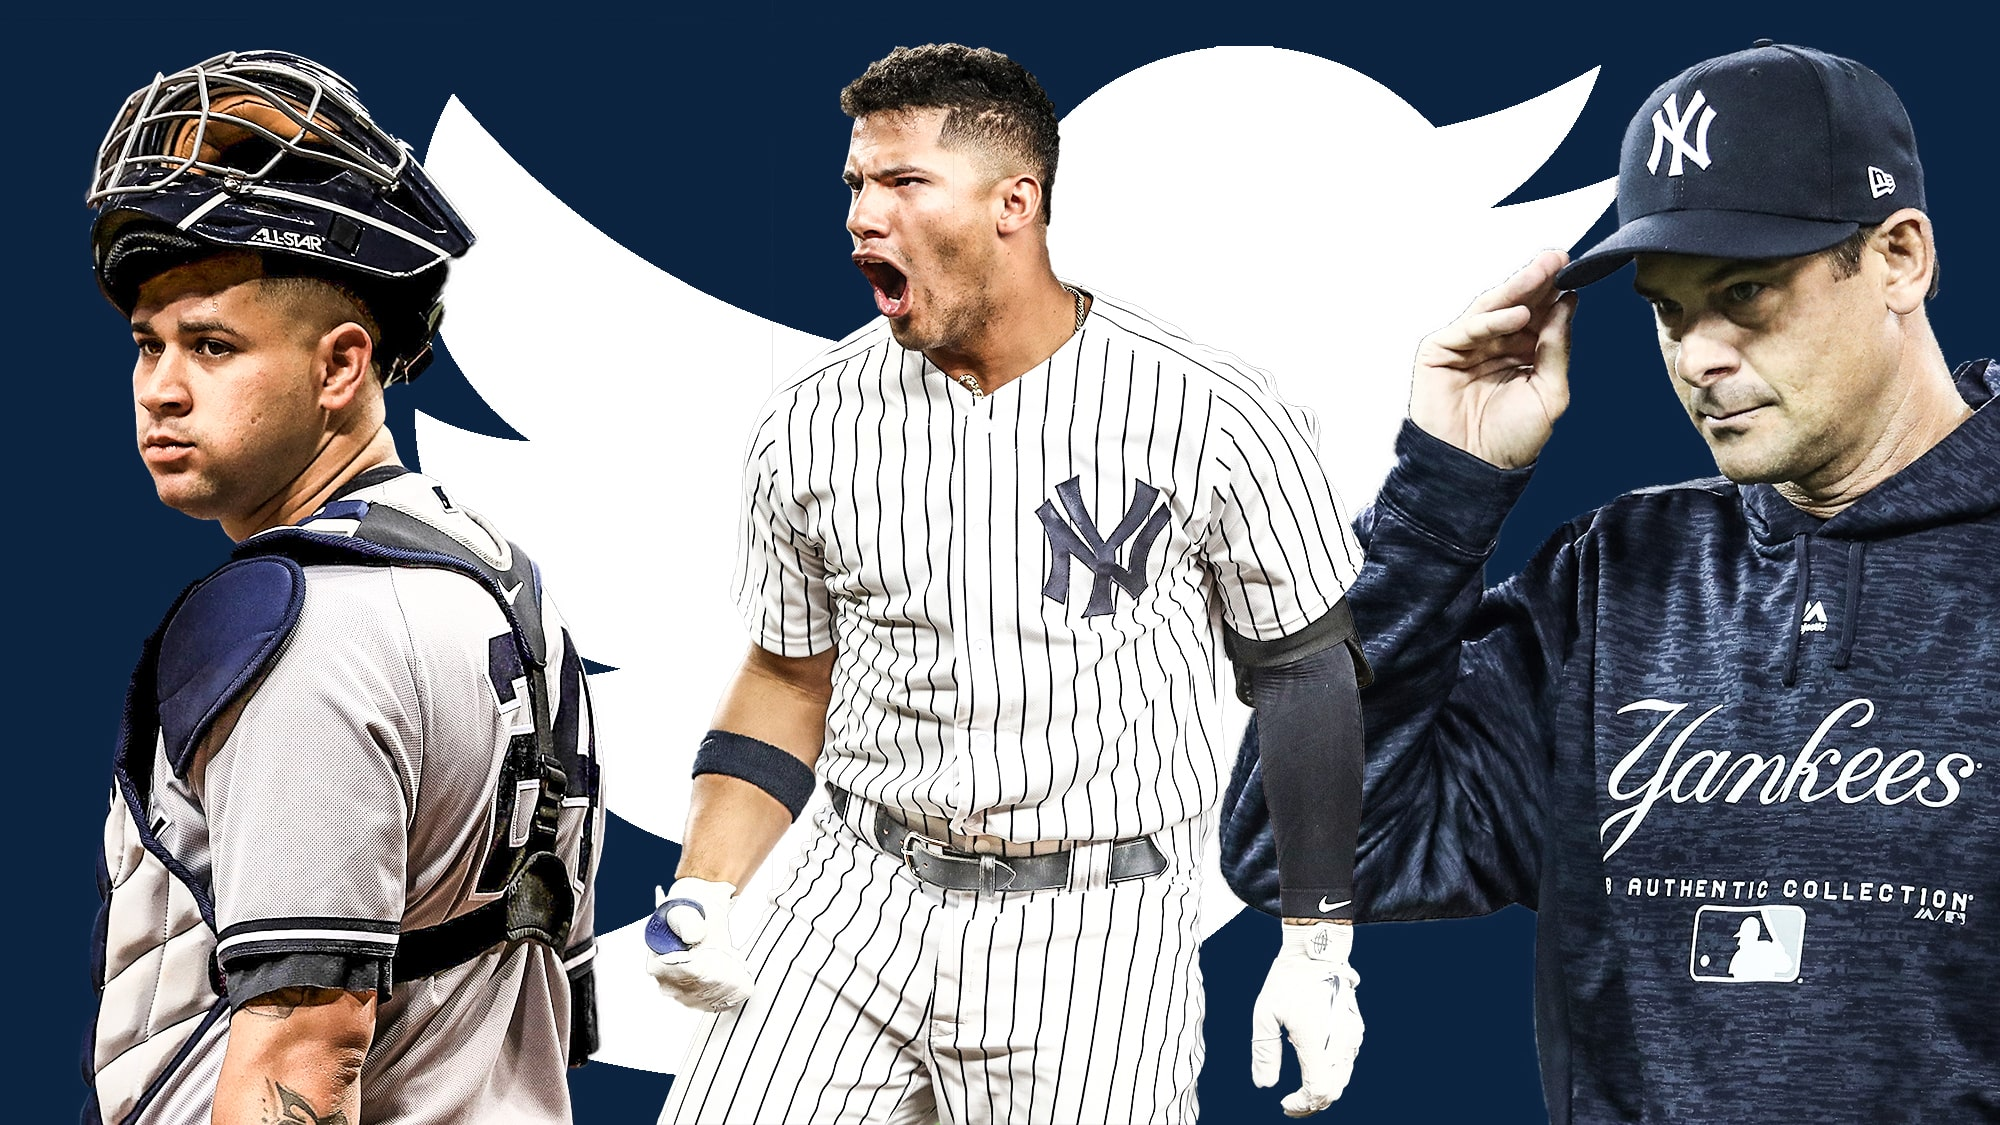 The 2018 playoff bandwagoner s guide to New York Yankees Twitter 4821b59aadf